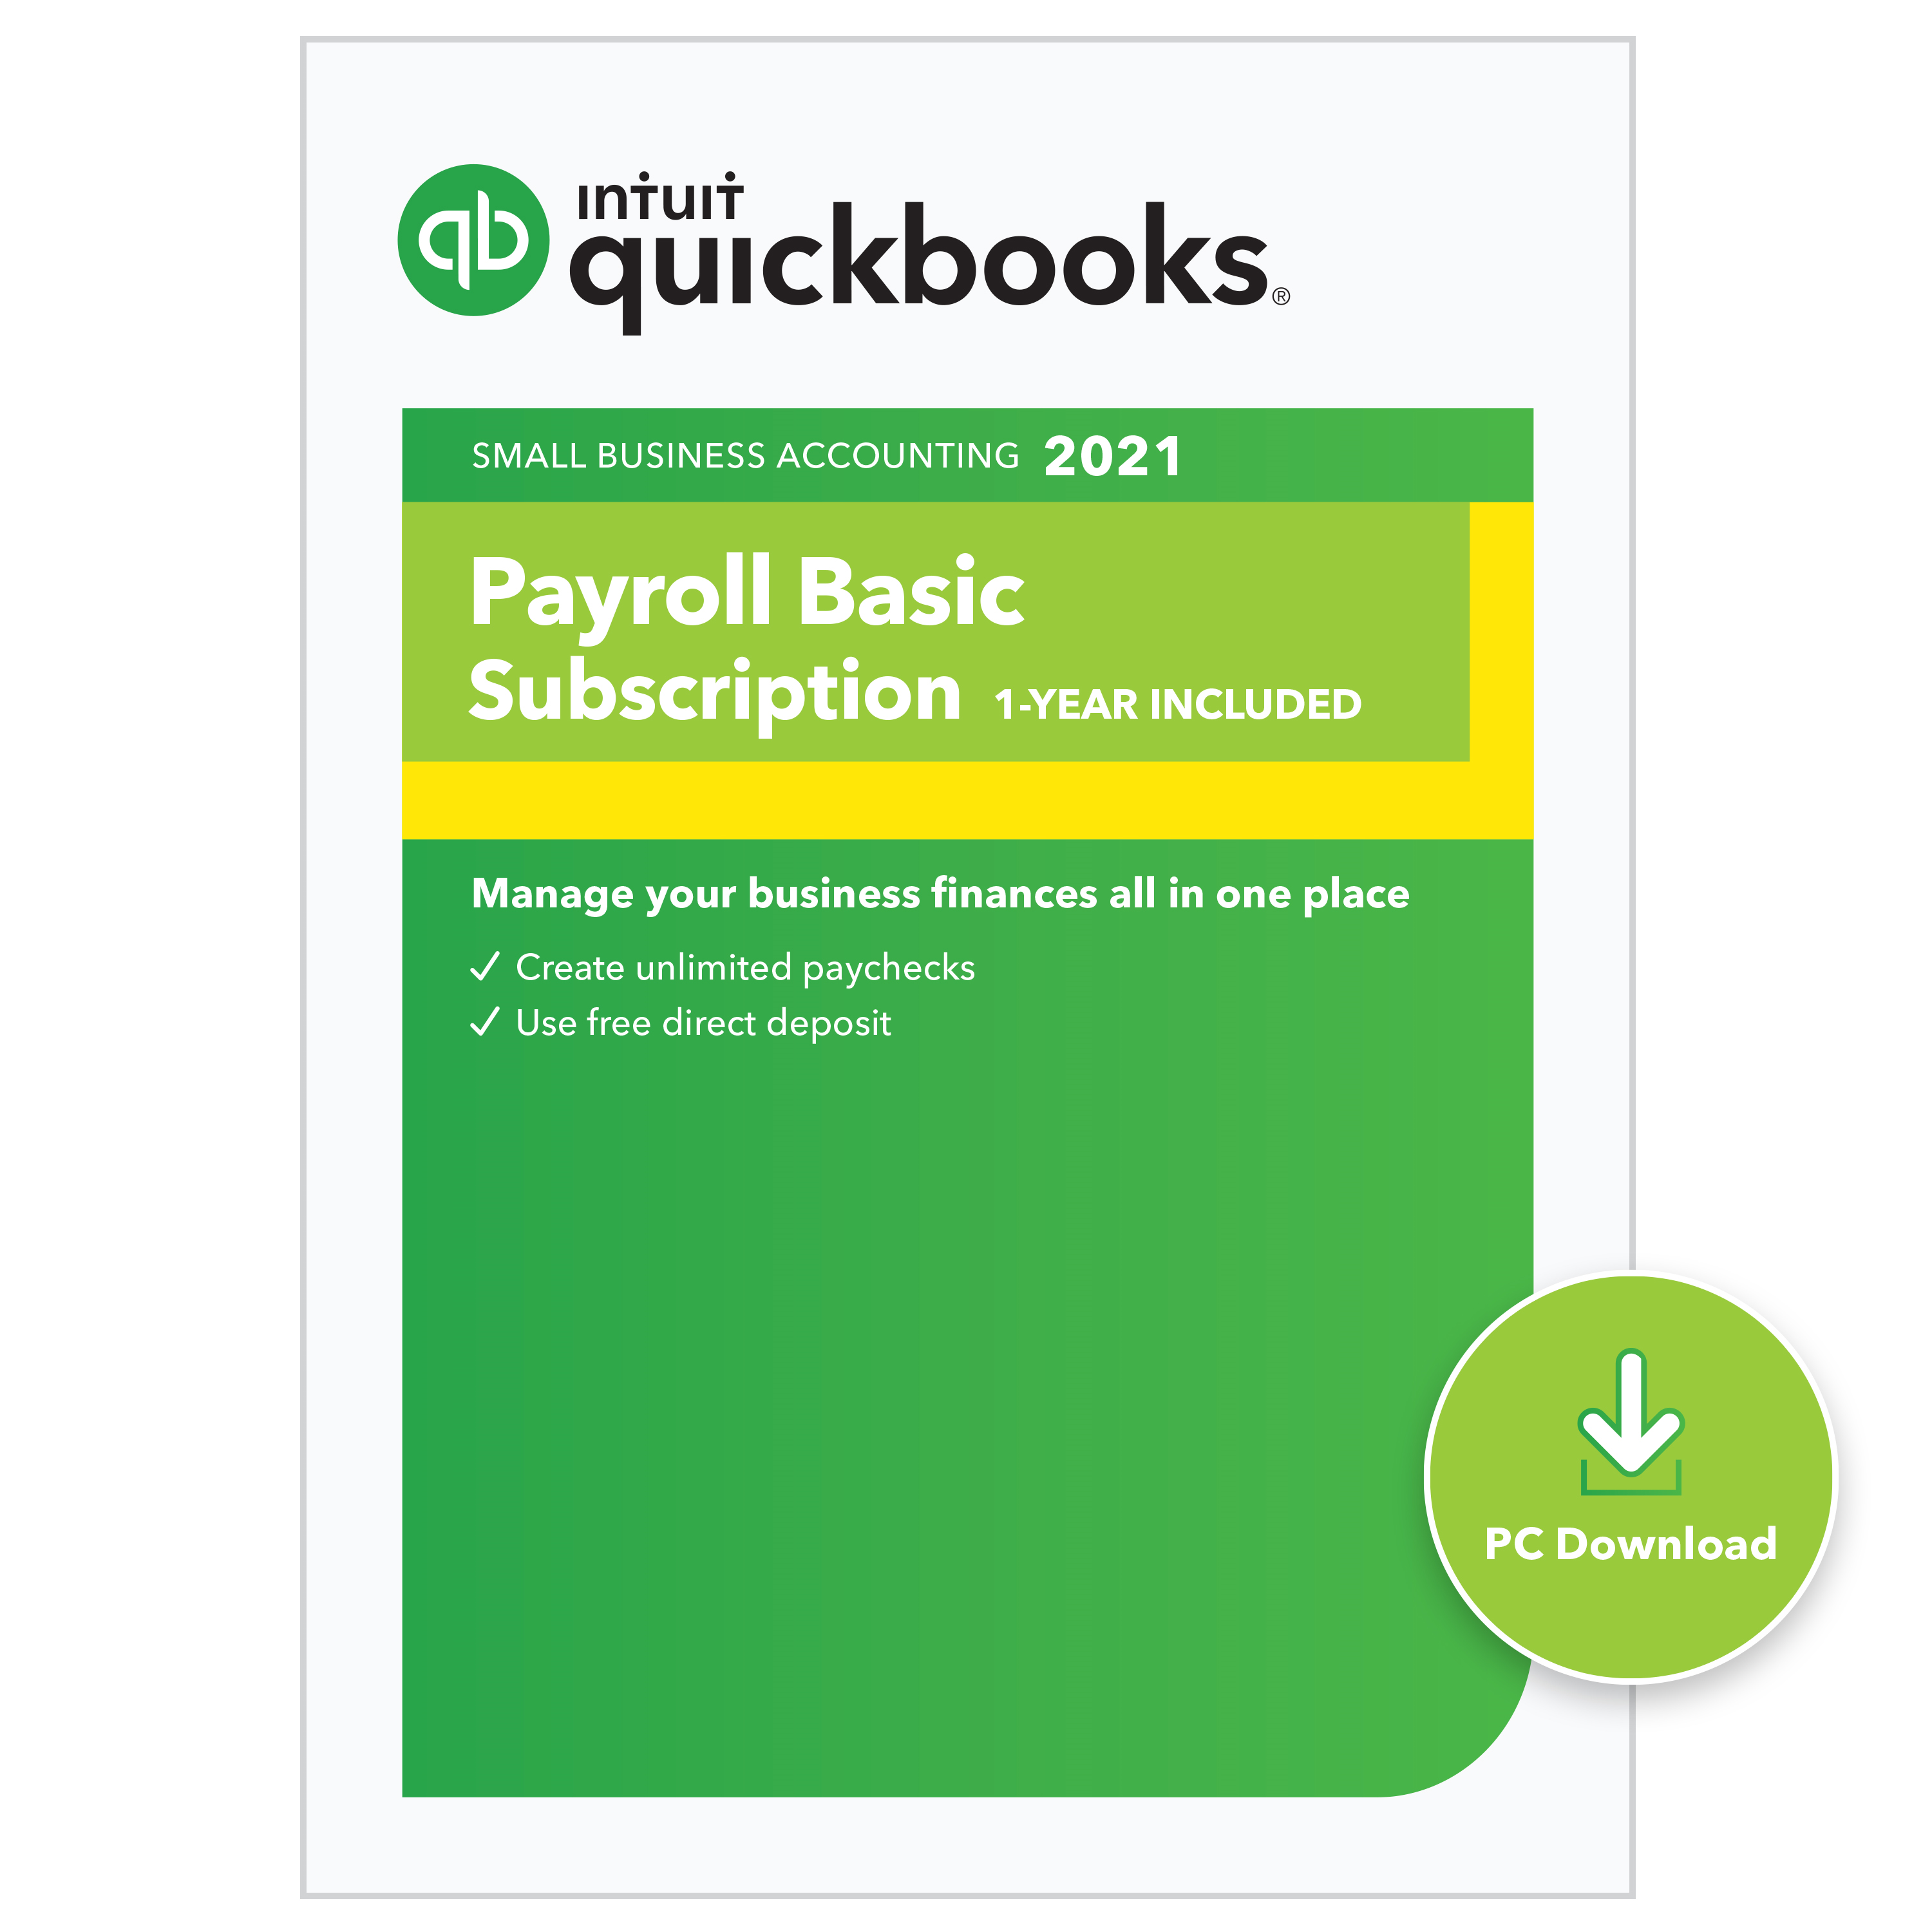 QuickBooks Payroll – Proadvisor assistance Give us a call 800.475.1047 for quickbooks payroll, quickbooks payroll basic, quickbooks desktop payroll, payroll for quickbooks, quickbooks payroll support, quickbooks payroll classes, quickbooks payroll training